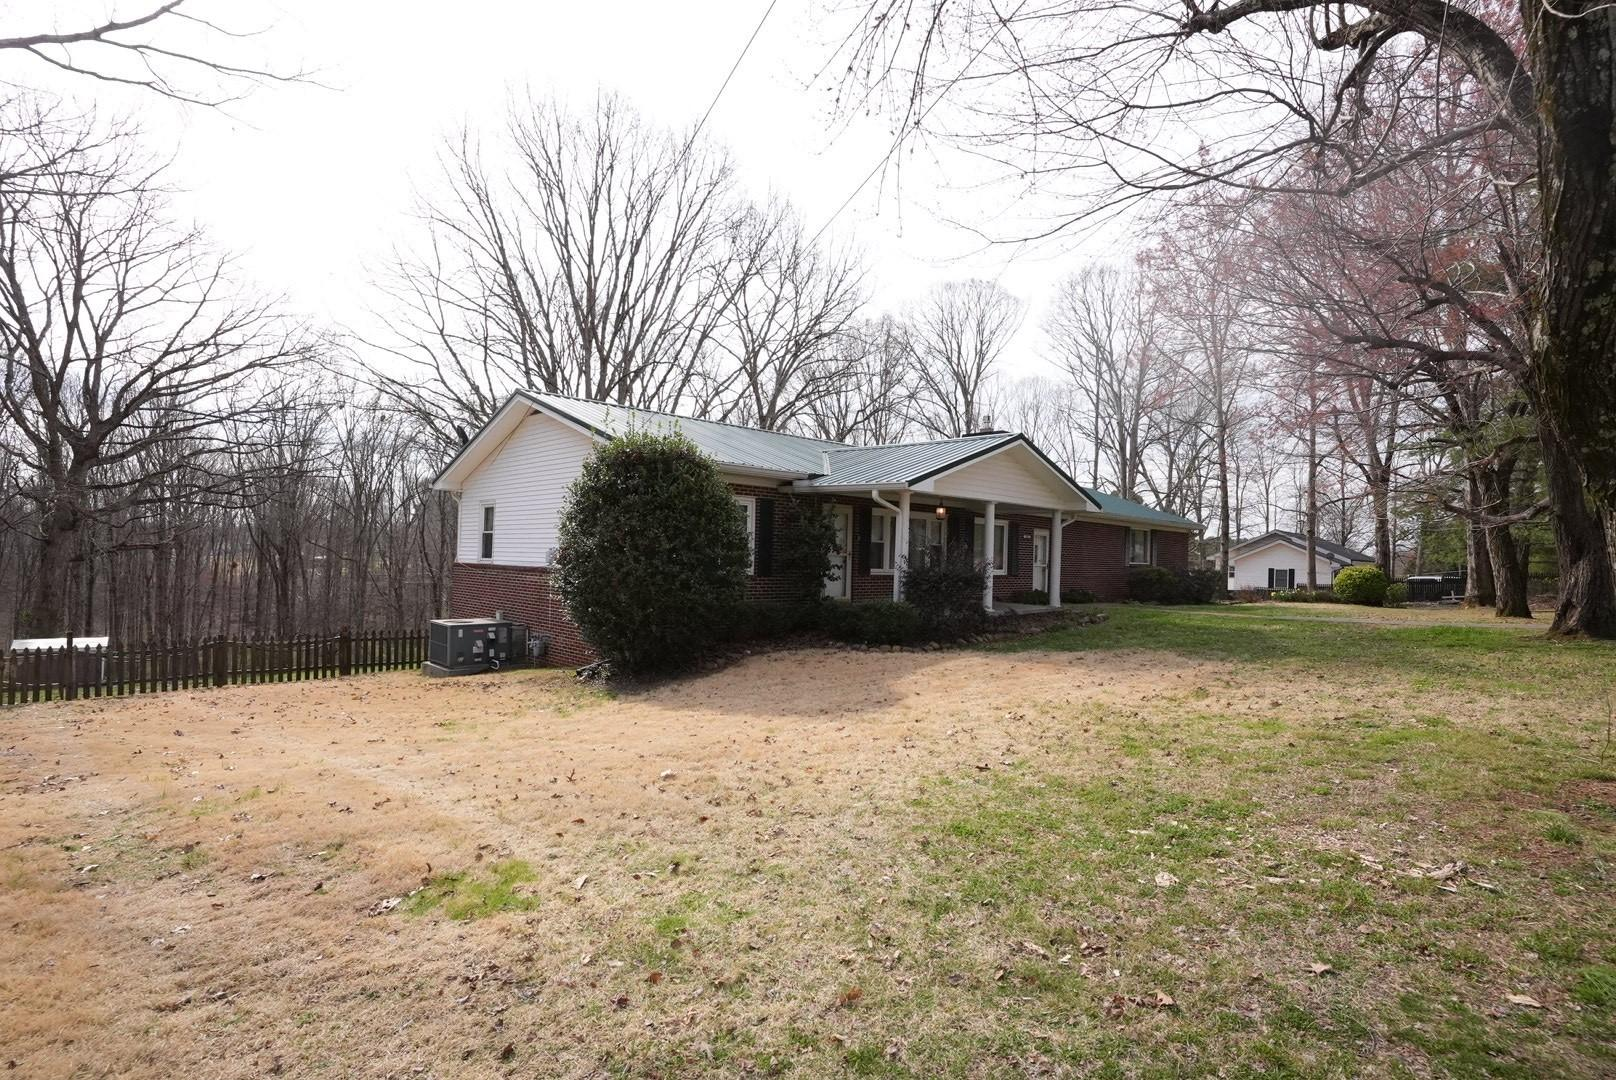 136 County Road 177, Athens, Tennessee 37303, 3 Bedrooms Bedrooms, ,2 BathroomsBathrooms,Single Family,For Sale,136 County Road 177,1145814